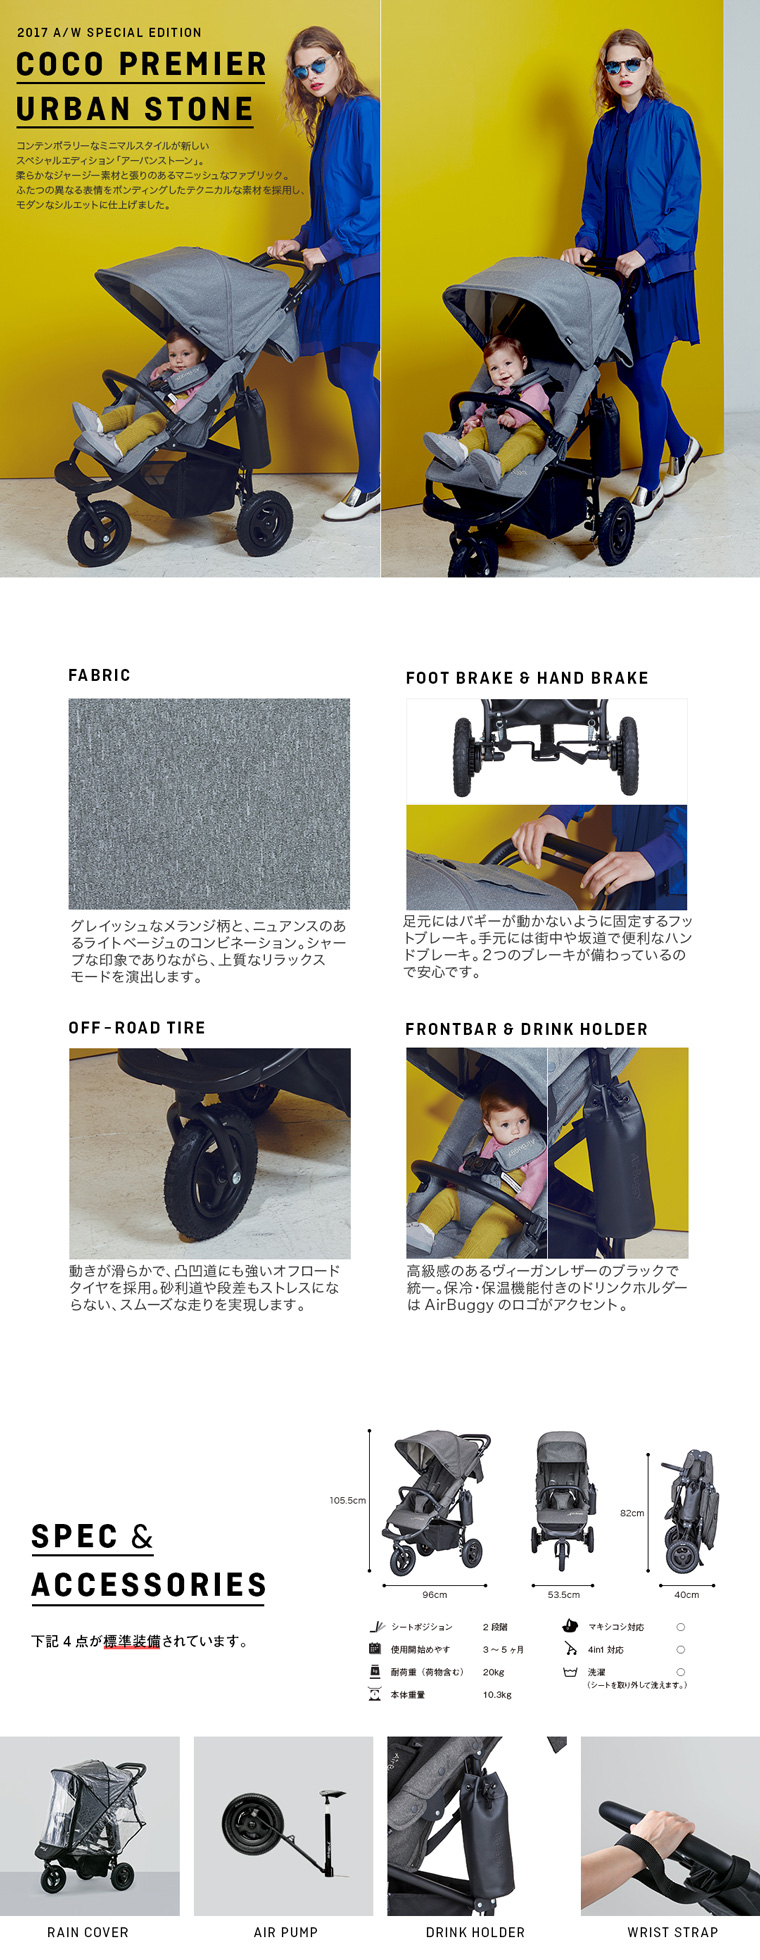 airbuggy-coco-premier-urban-stone-info01